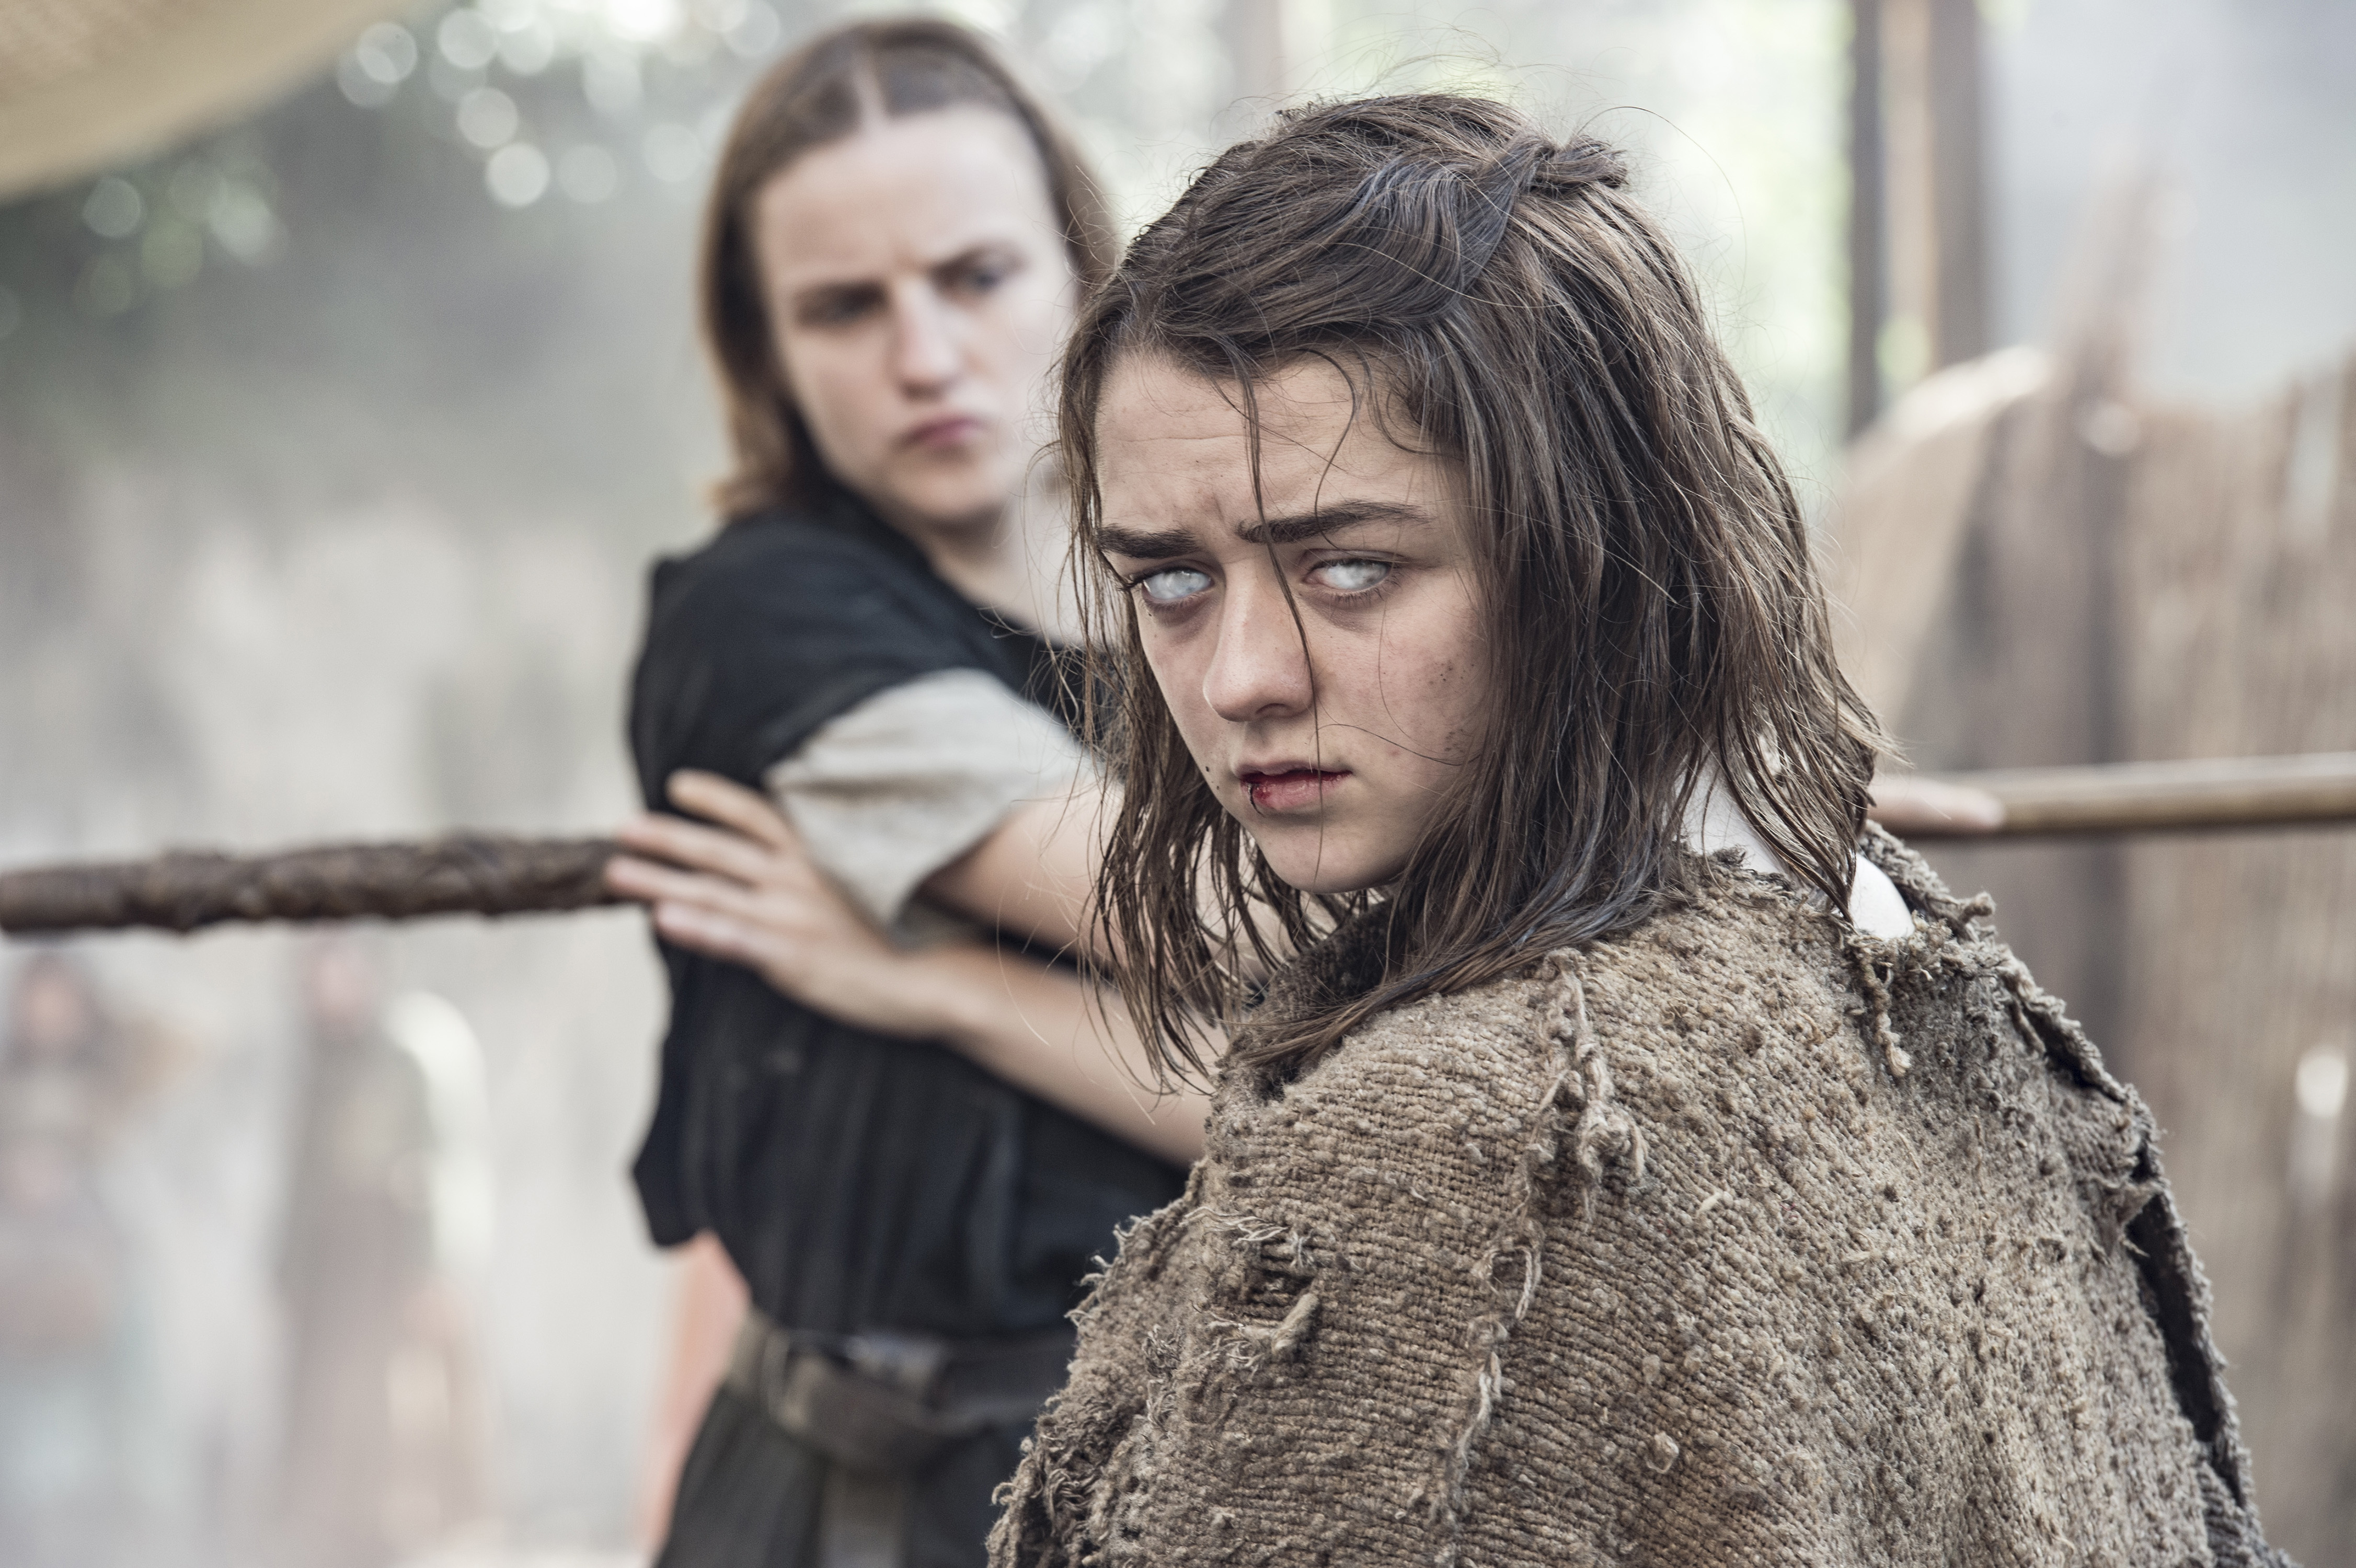 Faye Marsay and Maisie Williams in season 6, episode 1 of Game of Thrones.